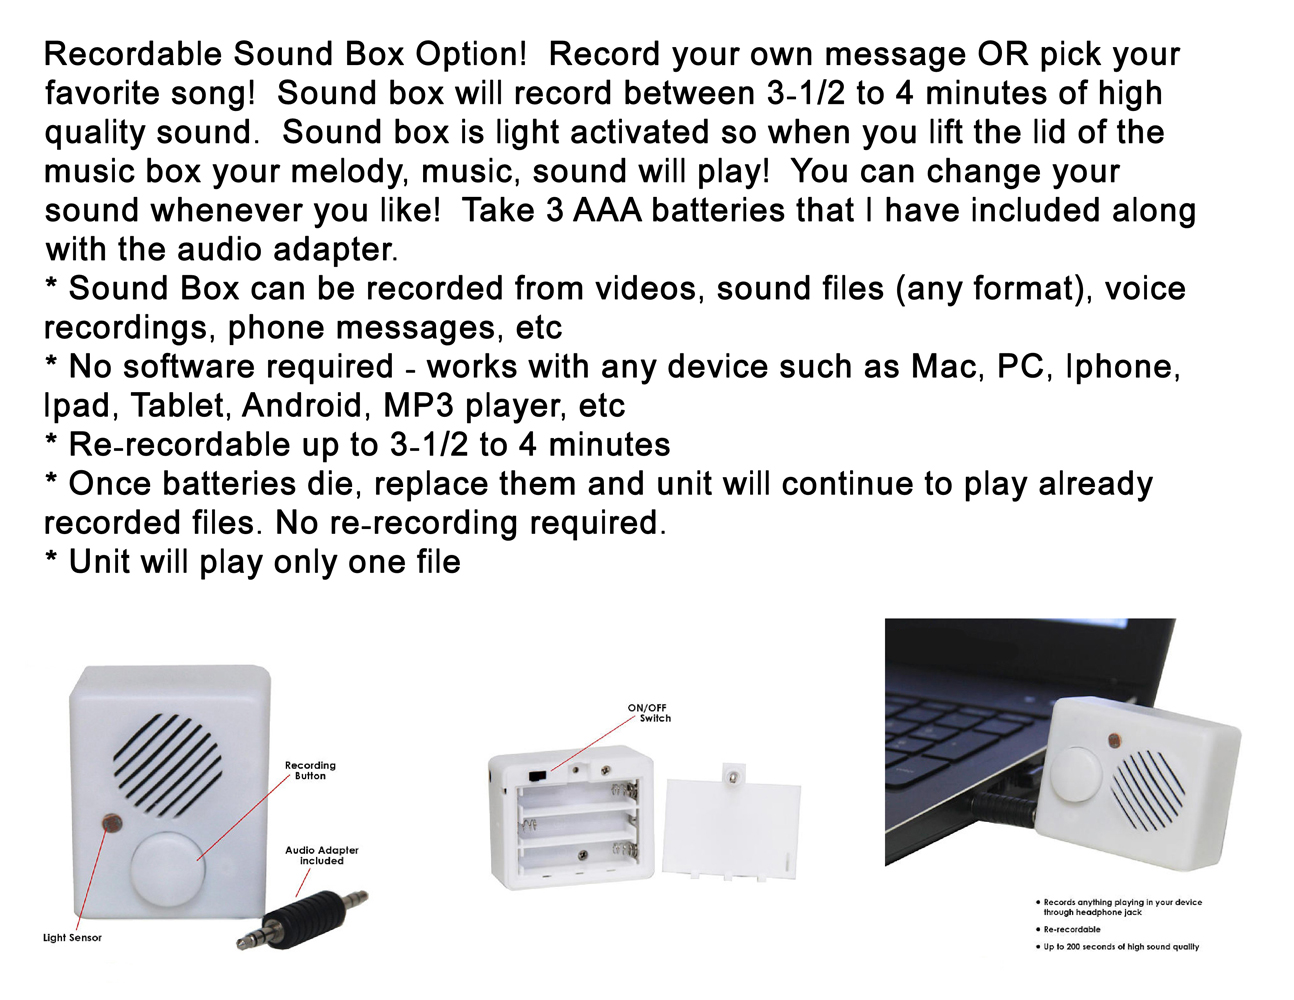 Sound Box Information